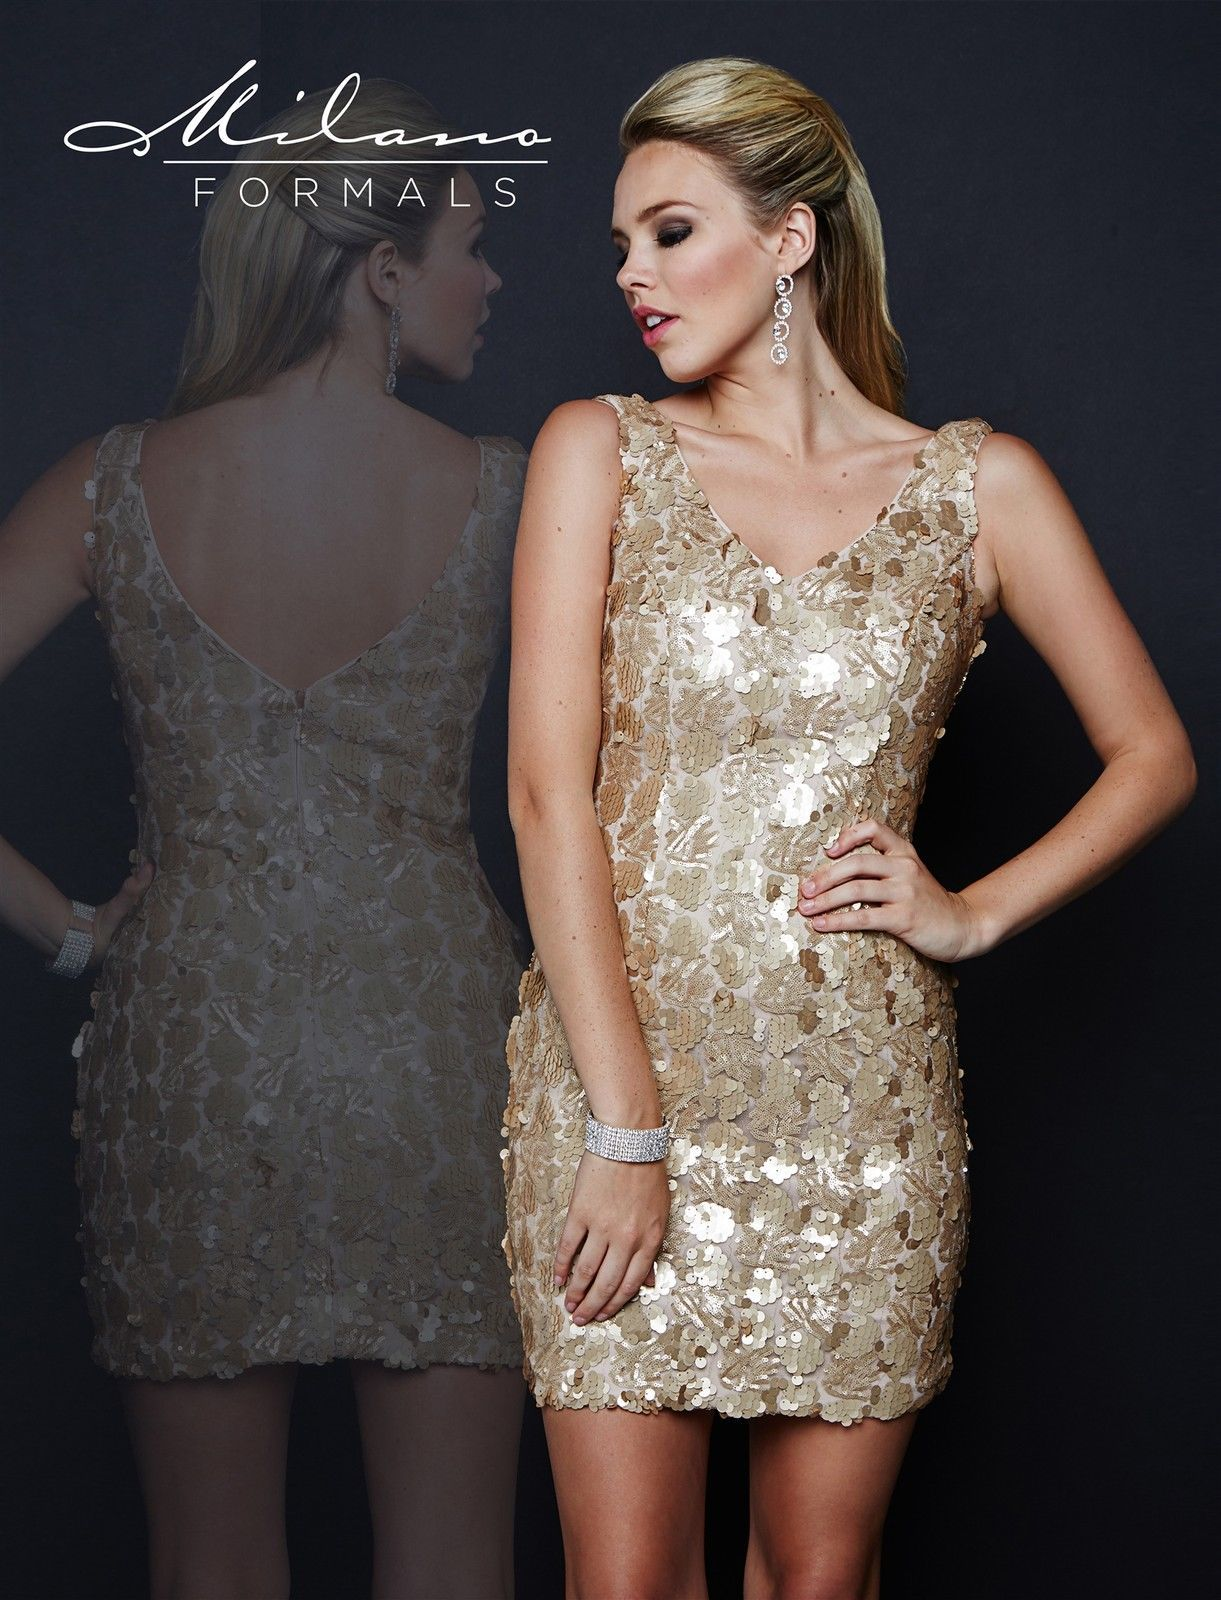 Image 1 of Milano Formals E1678 V-Neck Fitted Nude Gold Color Sequin Party Mini Dress 10